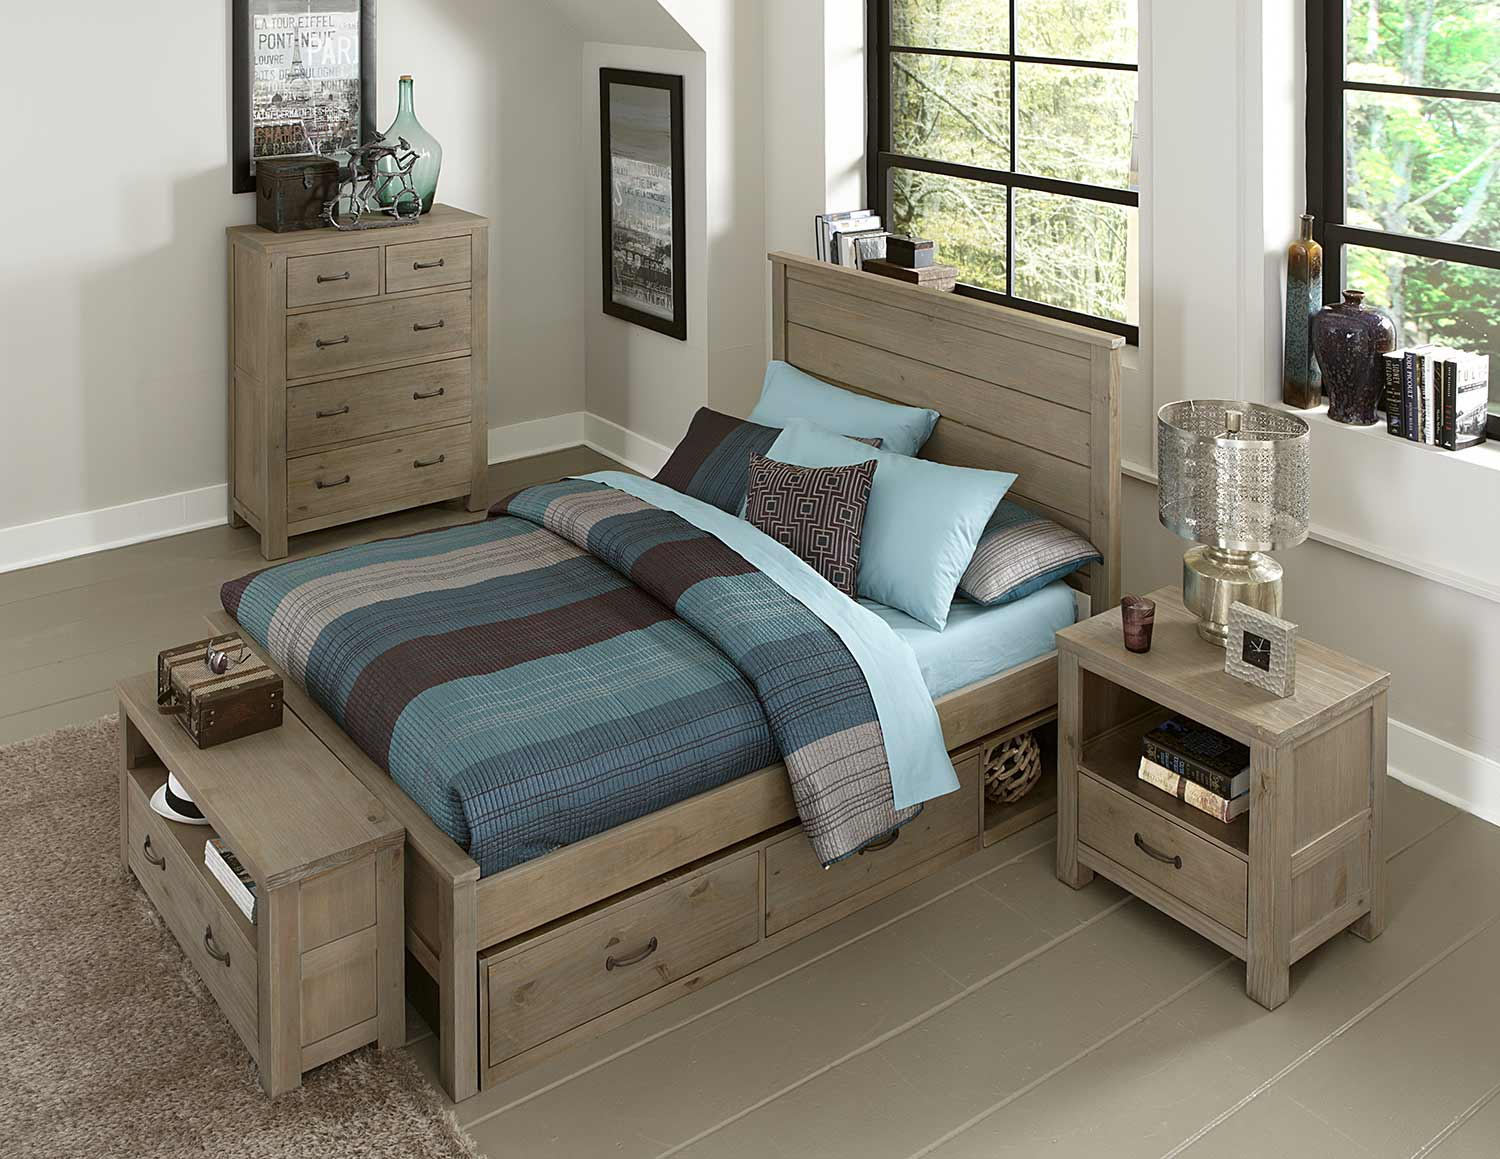 NE Kids Highlands Alex Bedroom Set With Storage - Driftwood